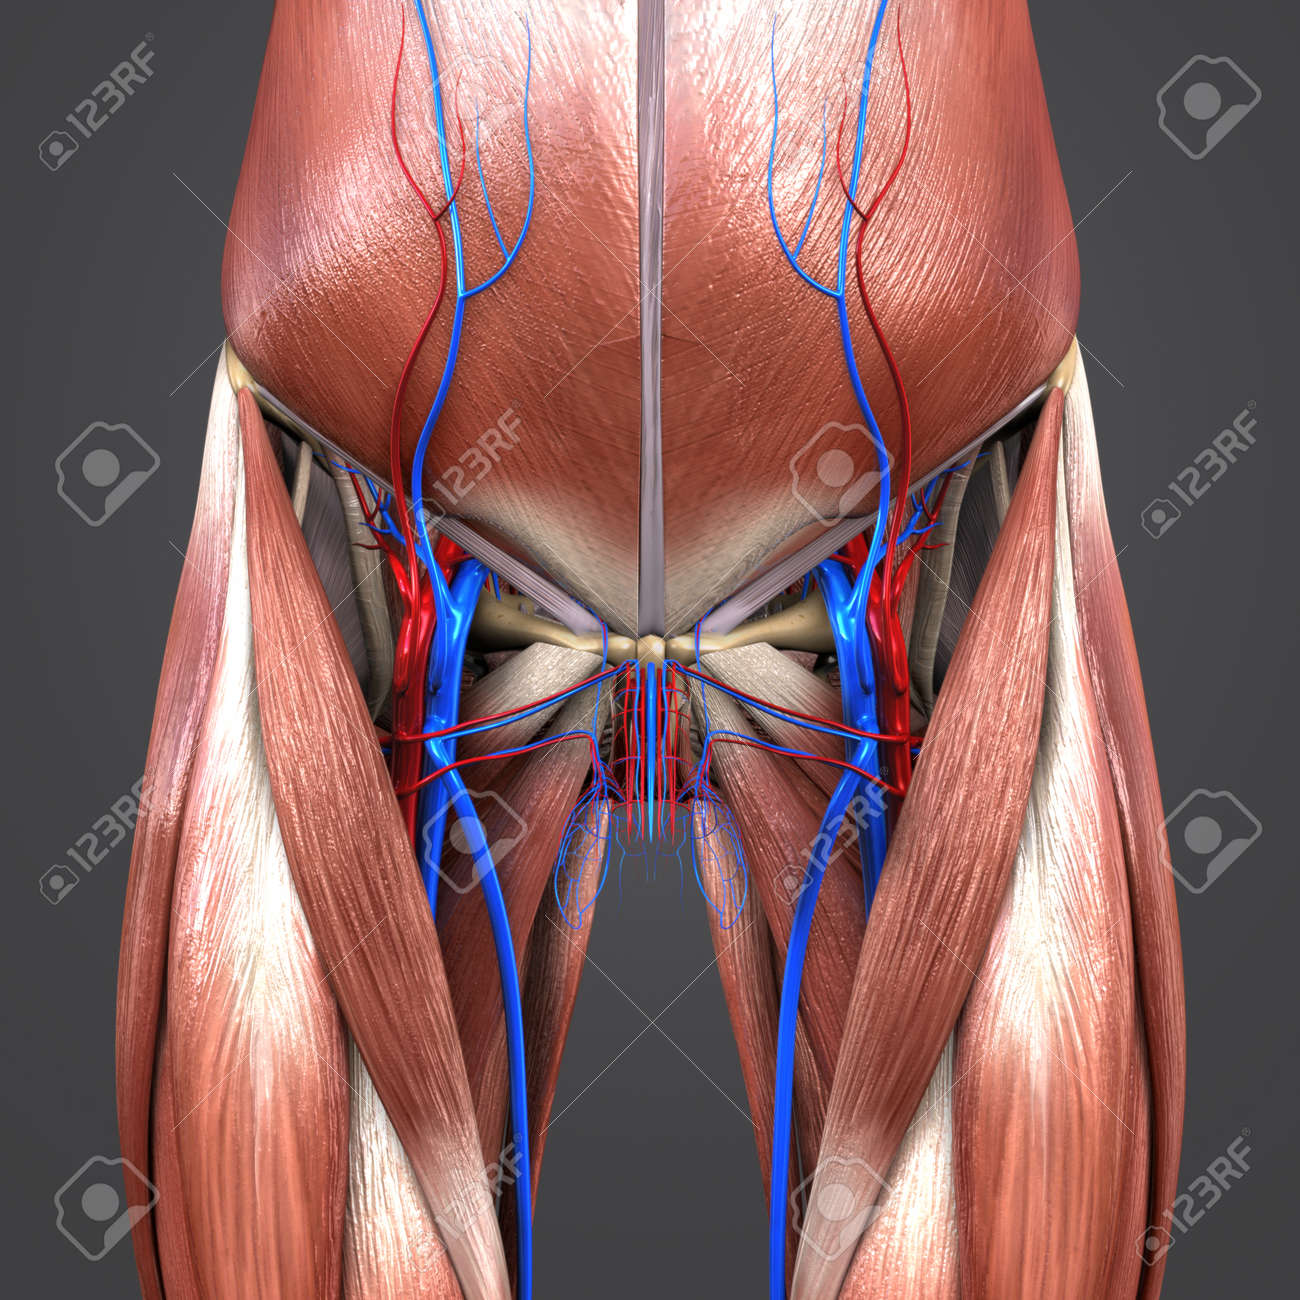 Muscles And Bones With Blood Vessels Of Hip And Thigh Stock Photo